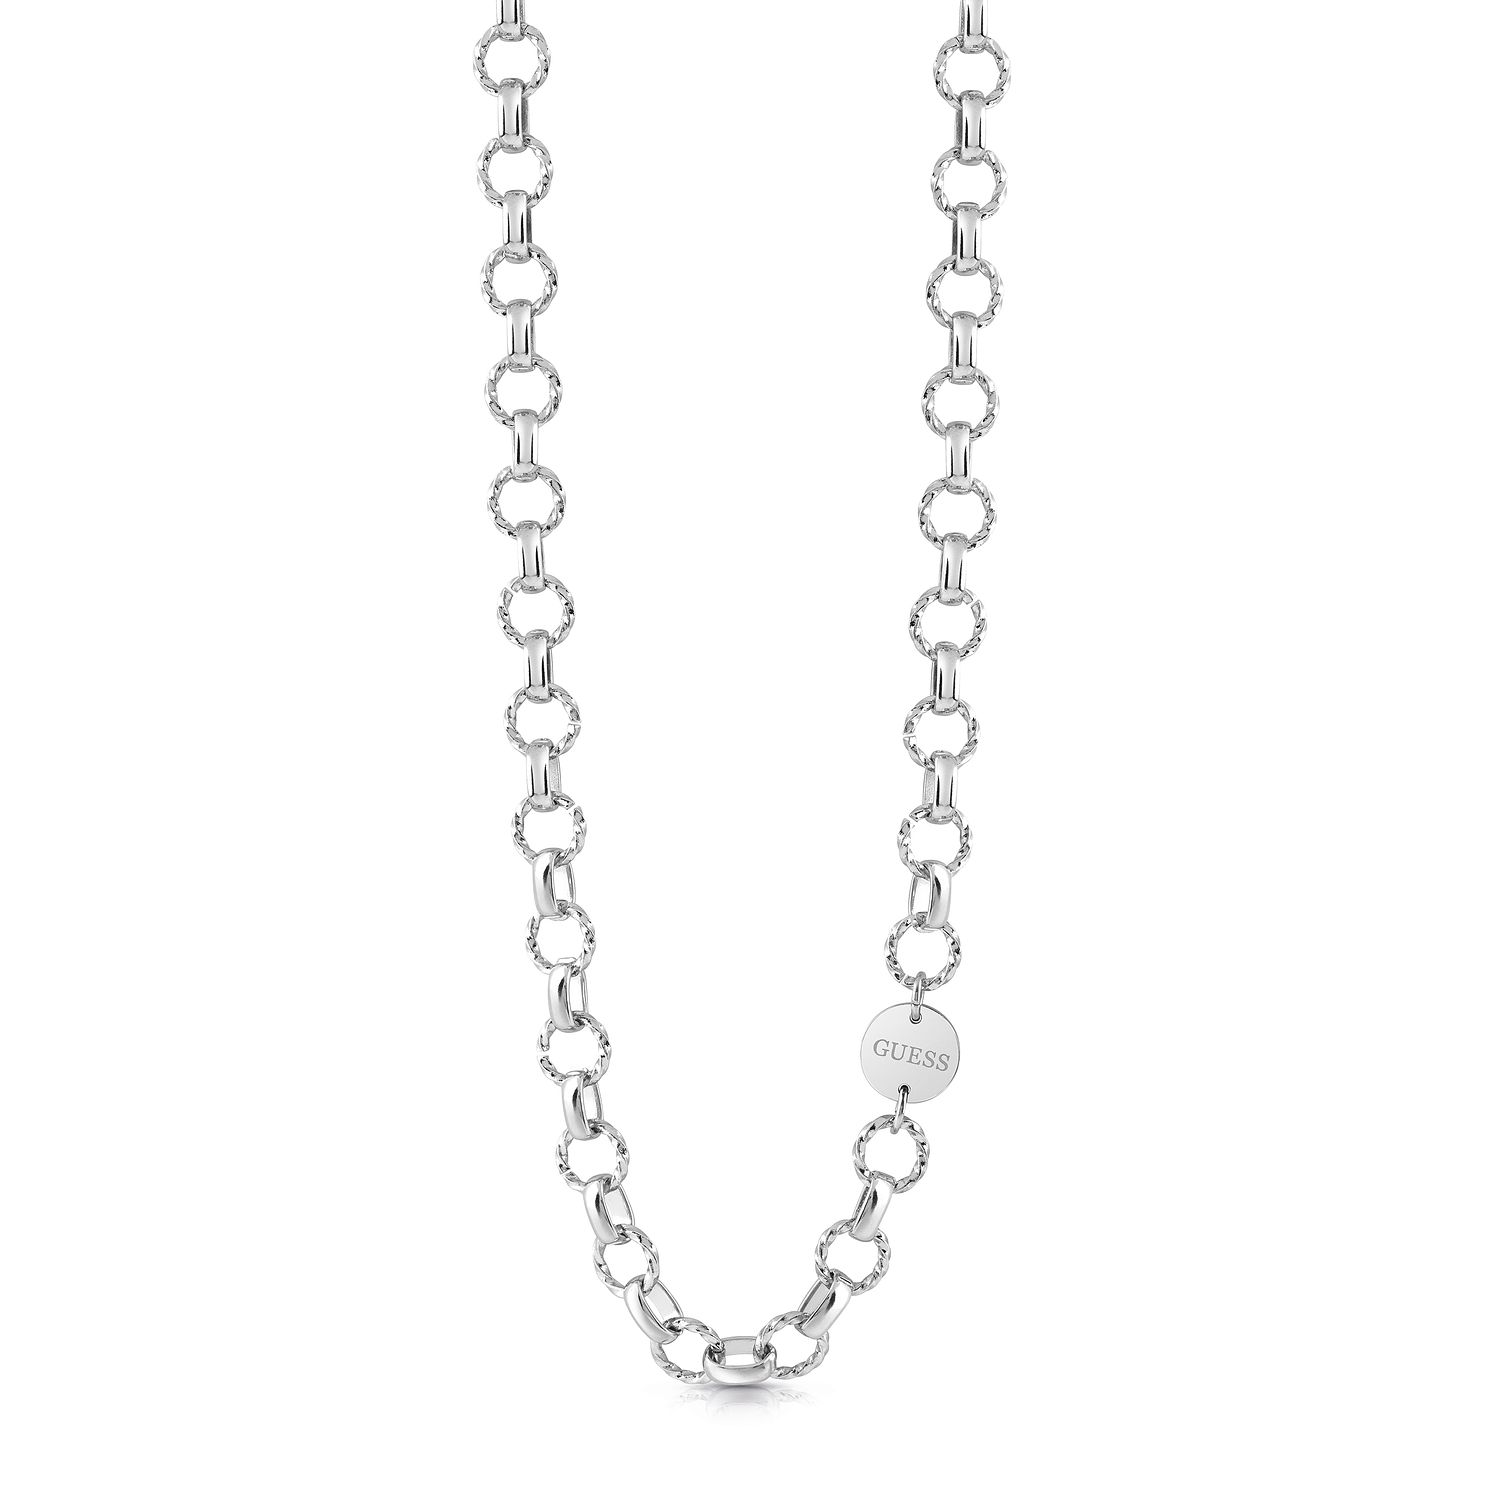 Guess Stainless Steel Round Charm Chain Necklace - Product number 5922682